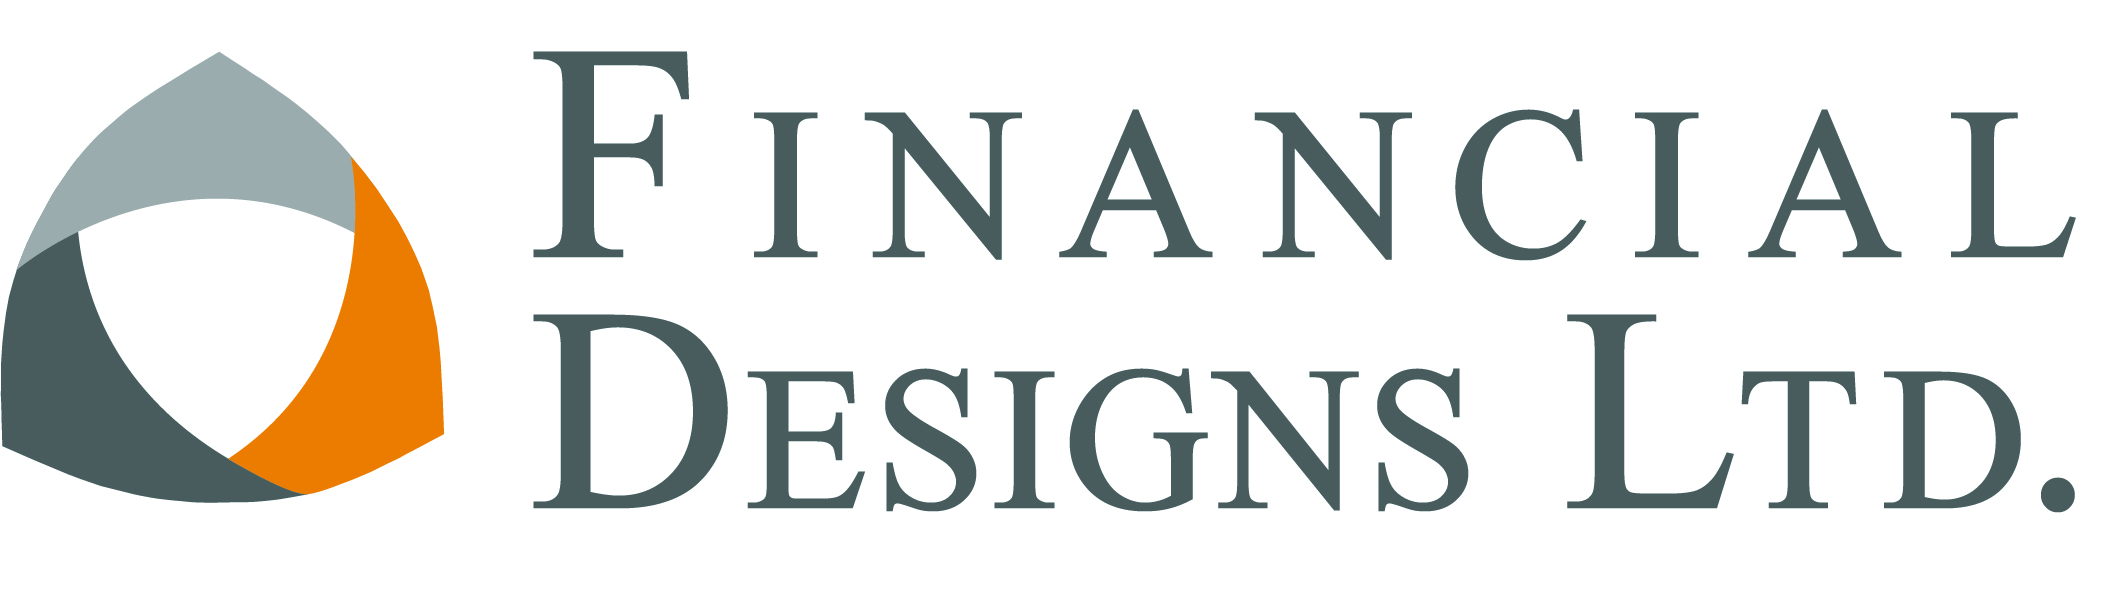 Financial Designs Ltd.